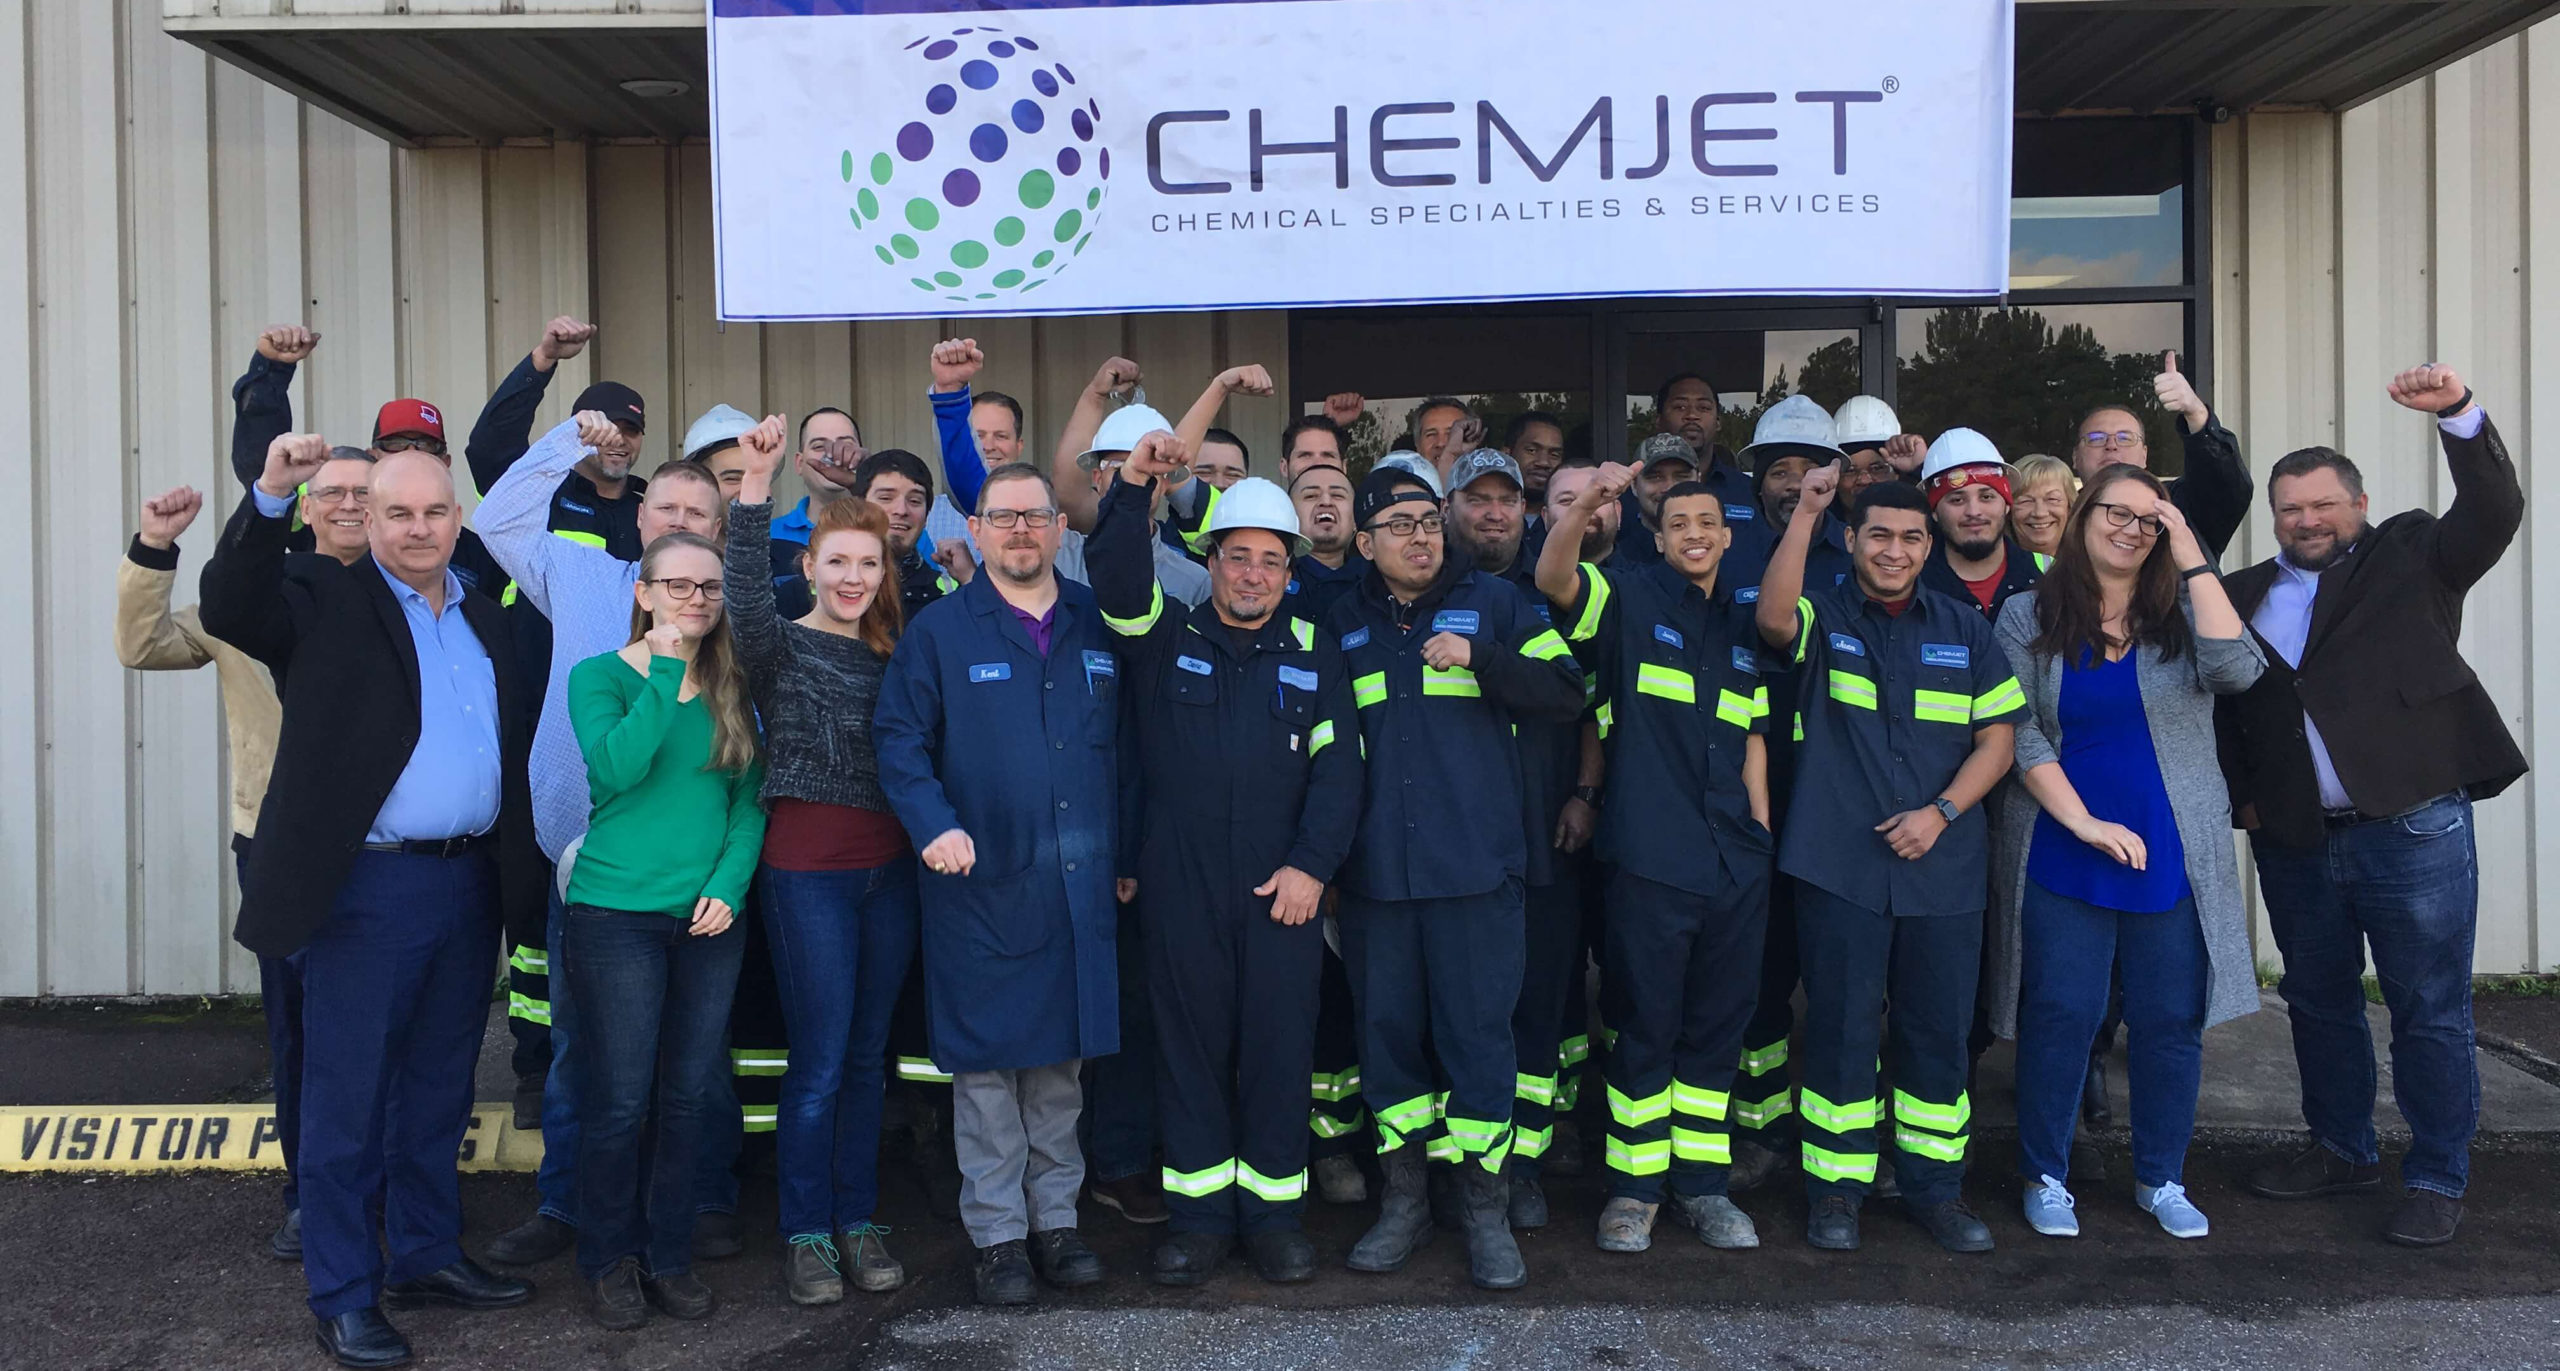 The Chemjet team at their Conroe plant